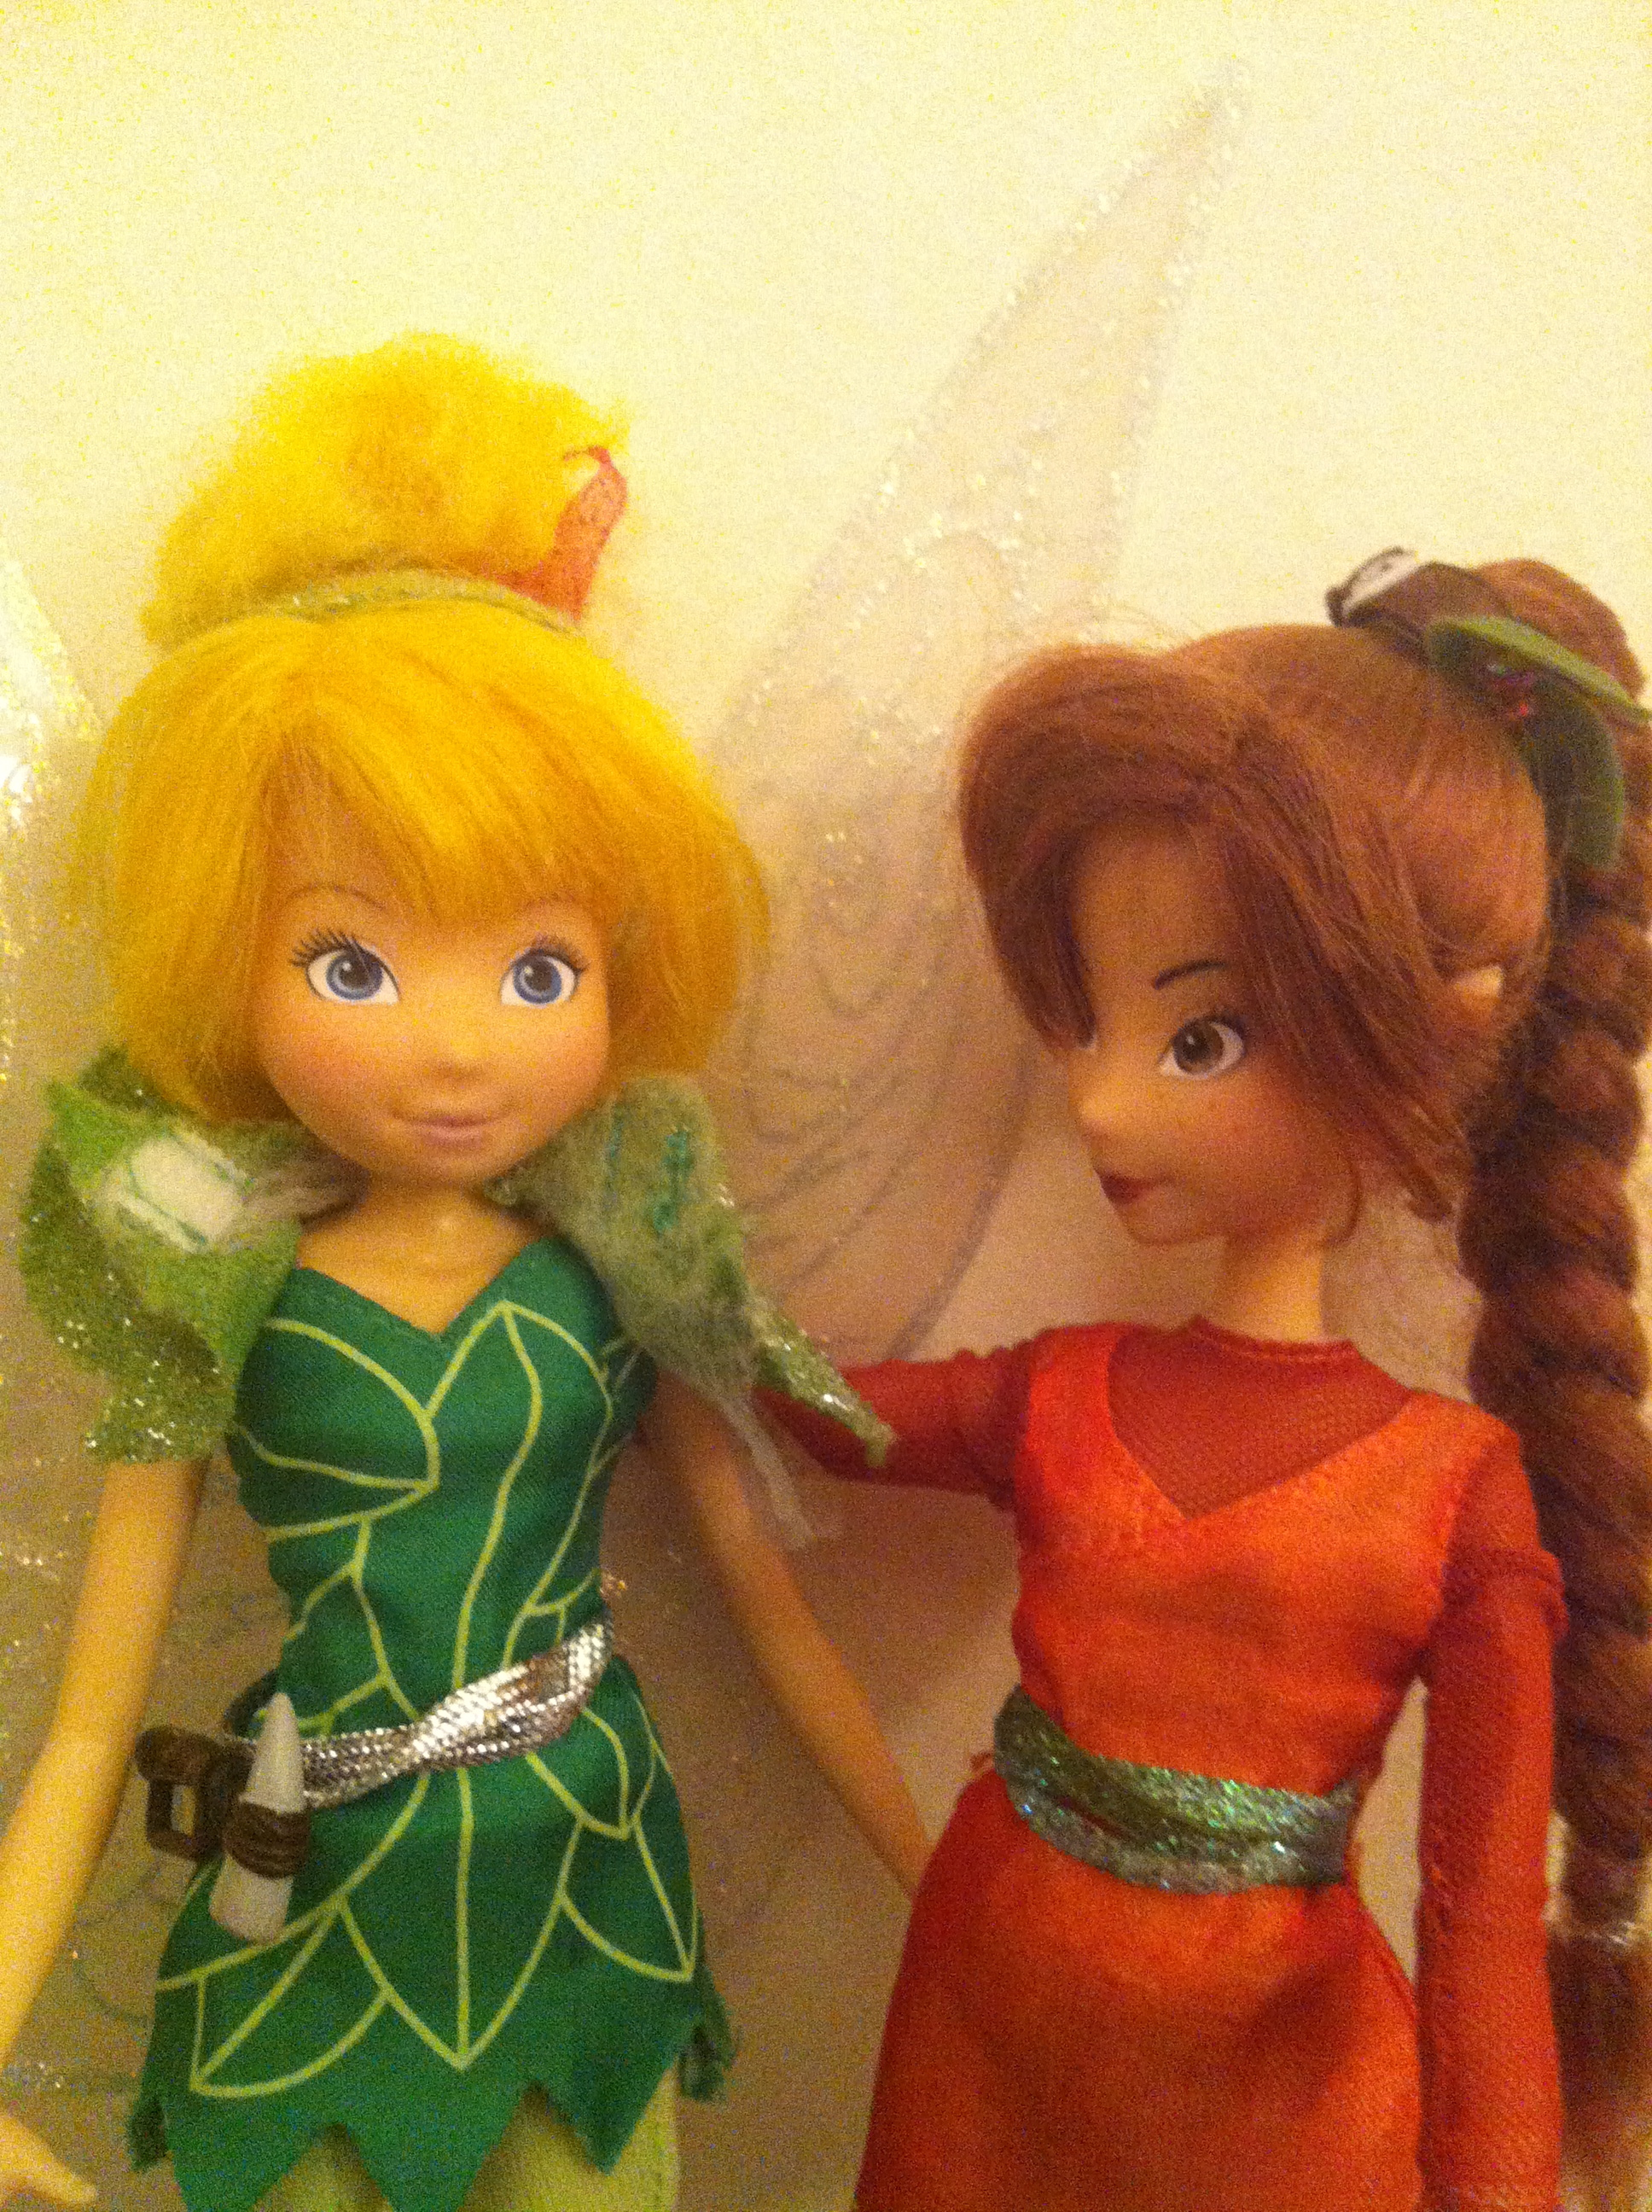 In the weeks since her unfortunate accident, Tinkerbell has turned to her fellow fairies for support and is gradually learning to spread her wings again. Her pants will not come off again, nor will her little green cape, which is now forever crazy-glued to her stunted neck.